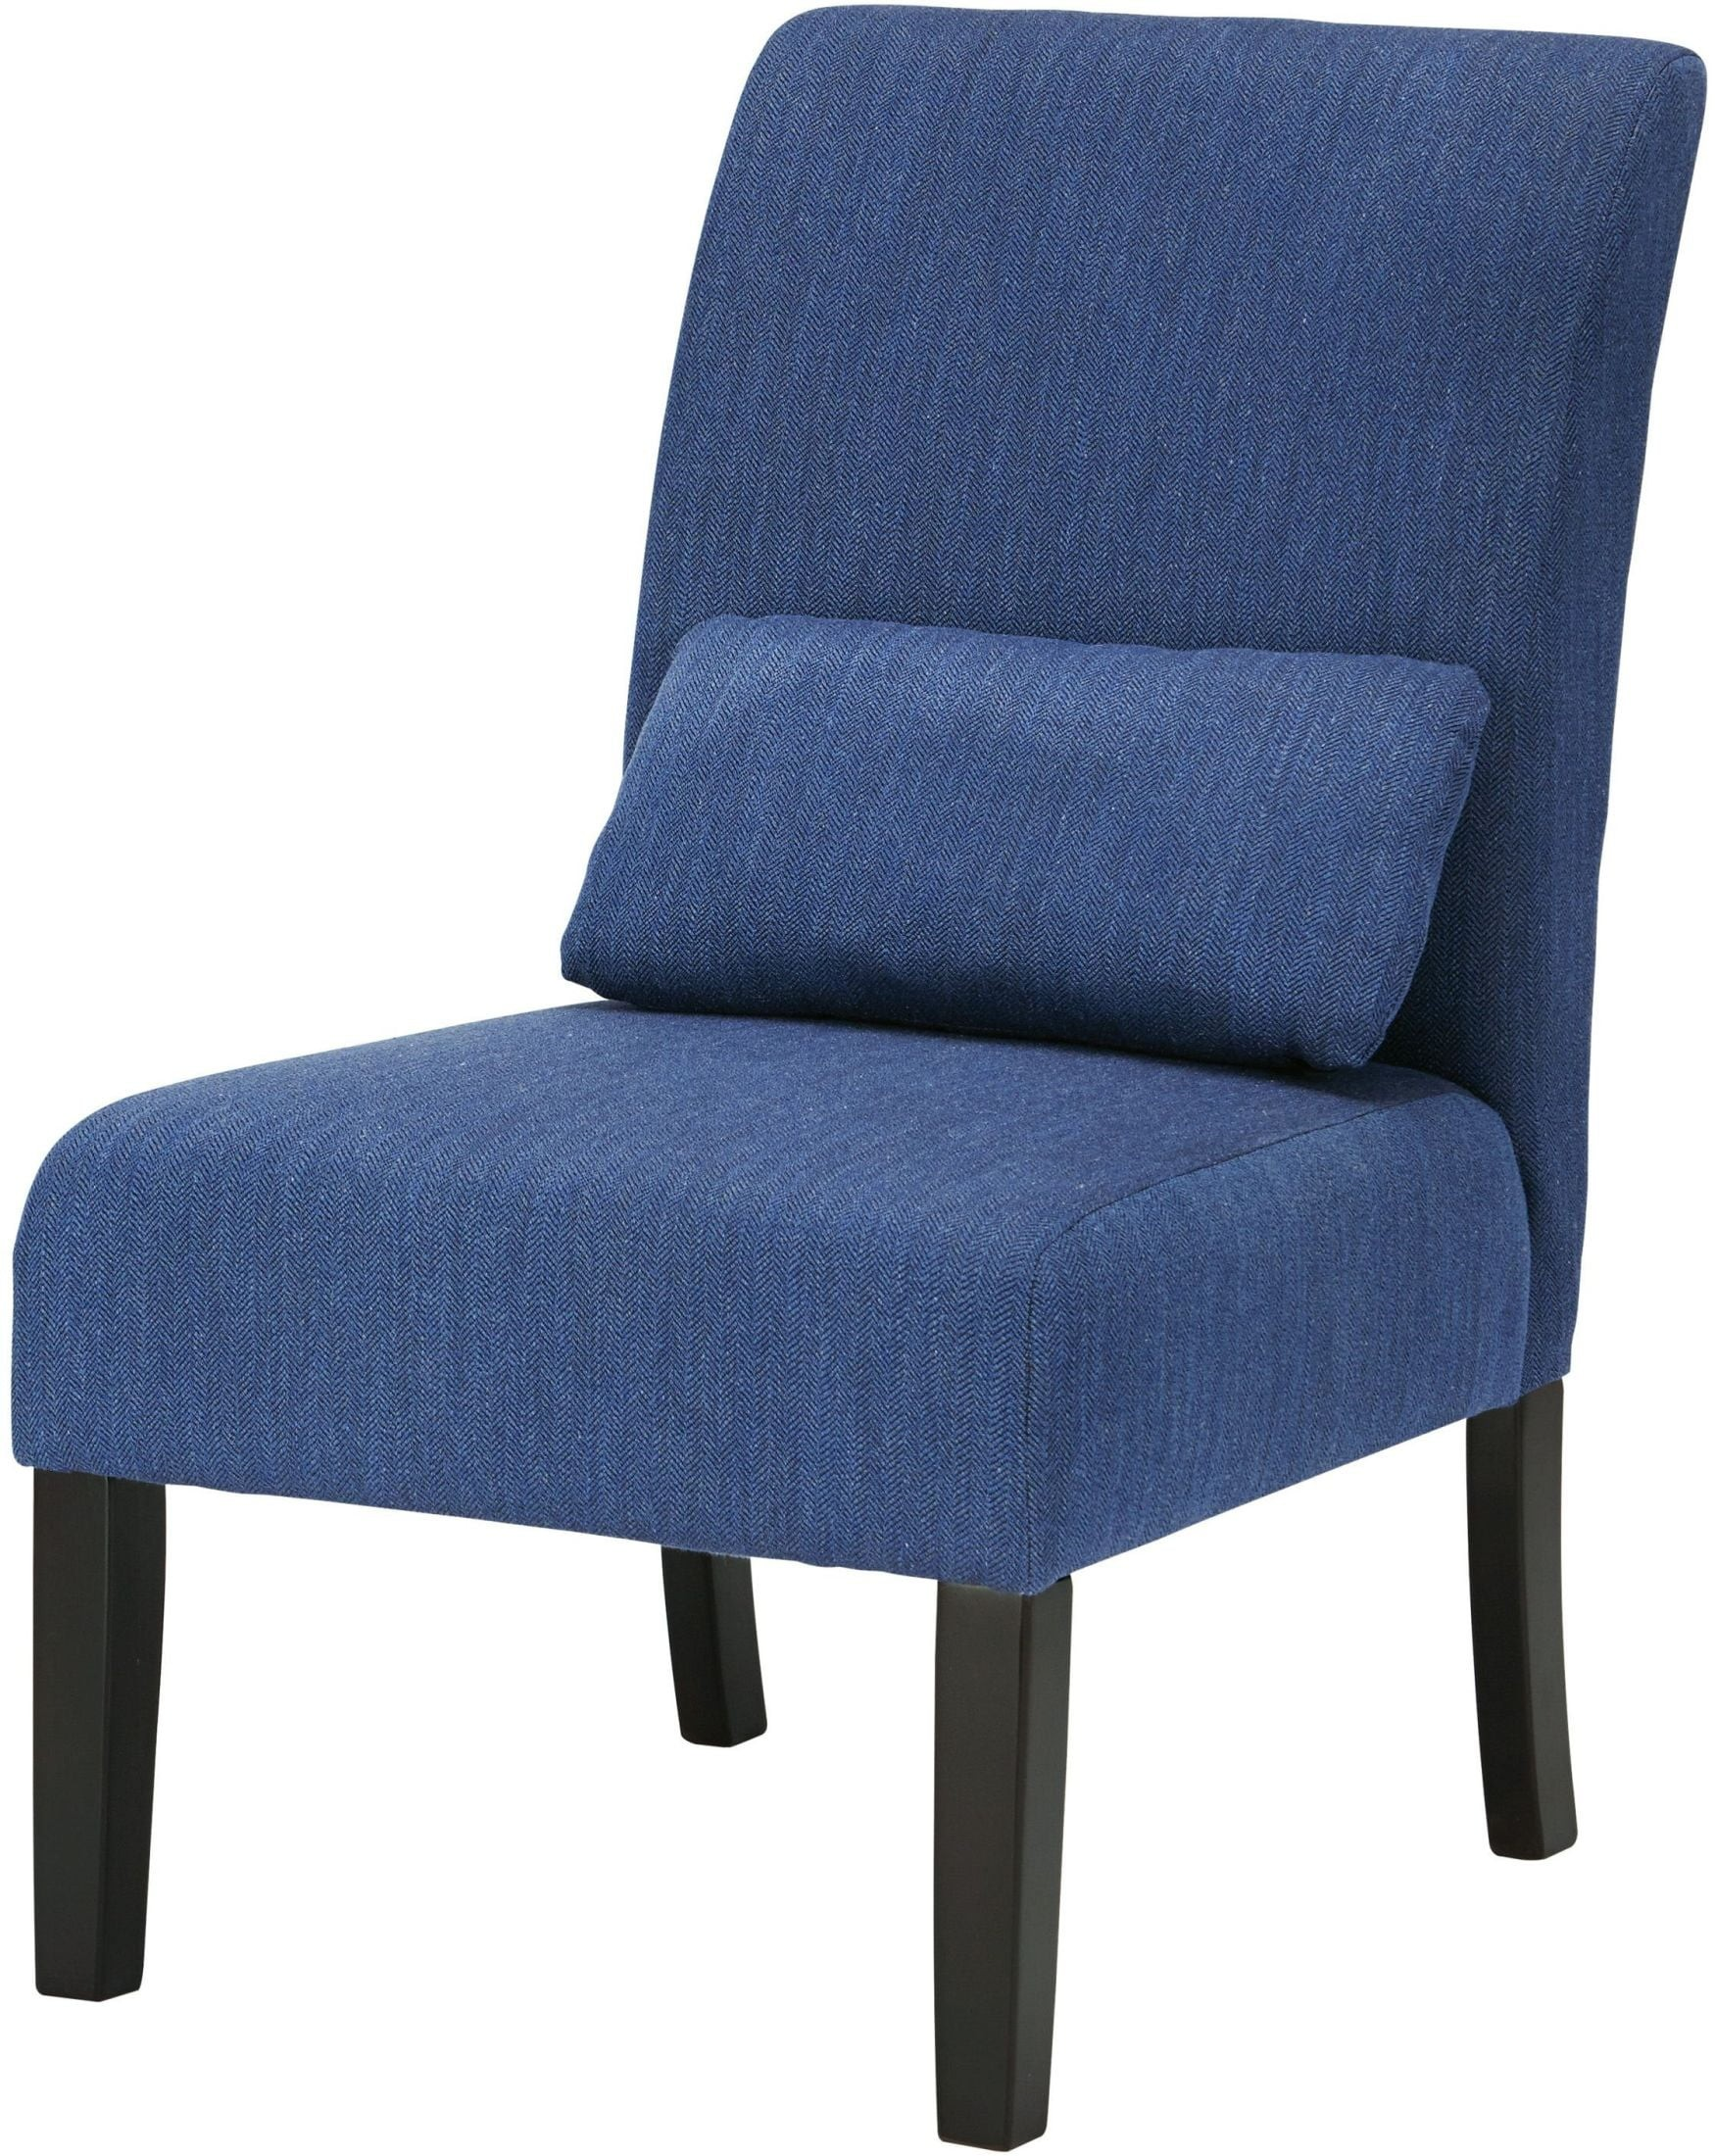 Accent Chair Blue Sesto Blue Accent Chair From Ashley Coleman Furniture